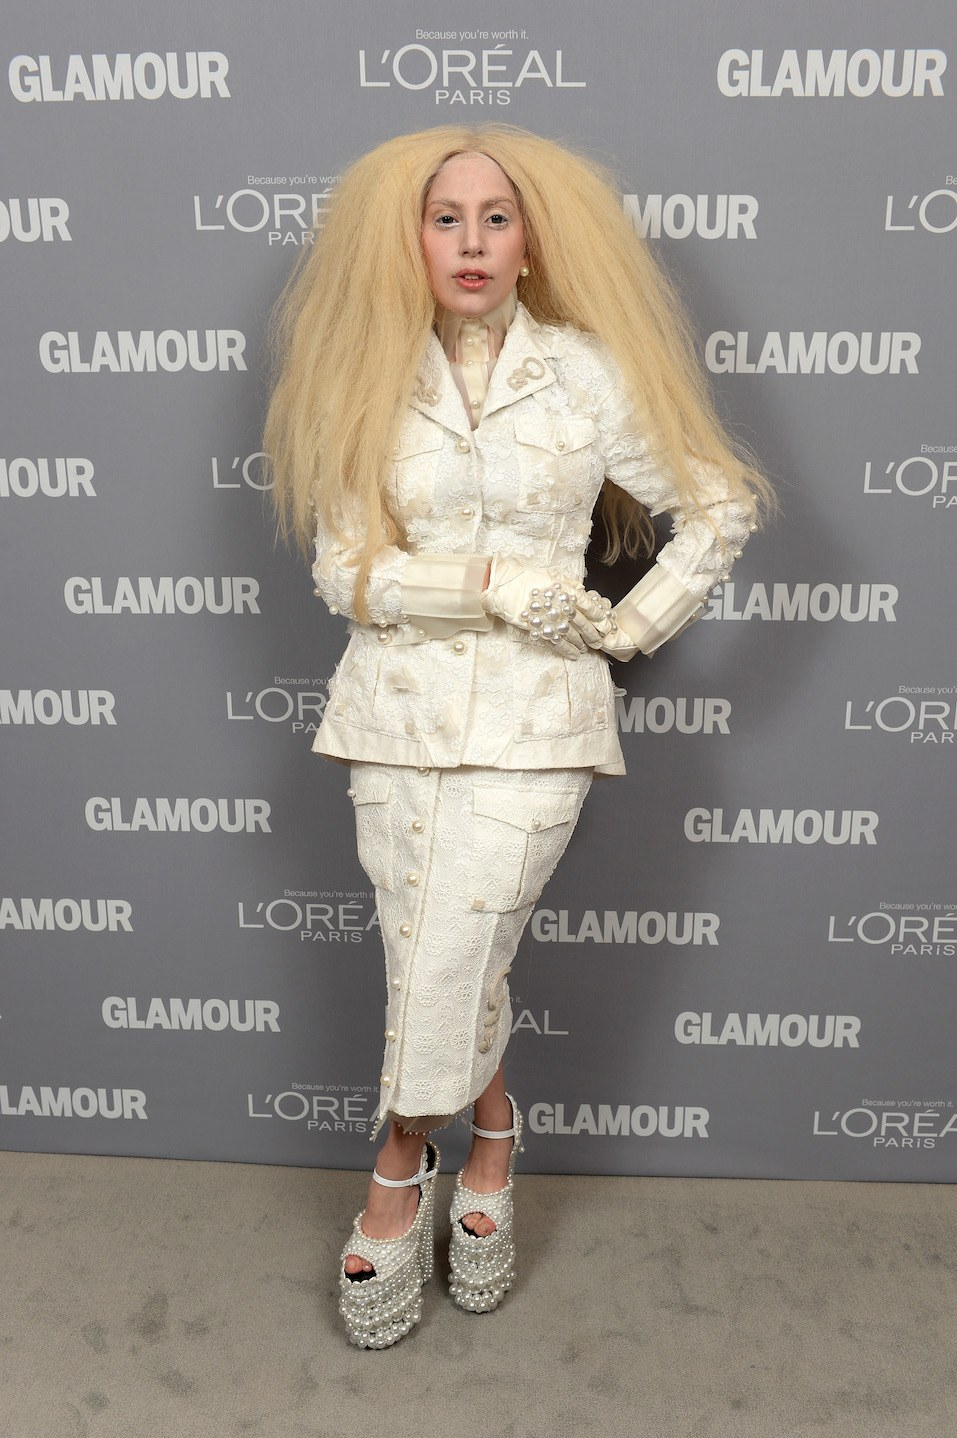 Lady Gaga attends Glamour's 23rd annual Women of the Year awards